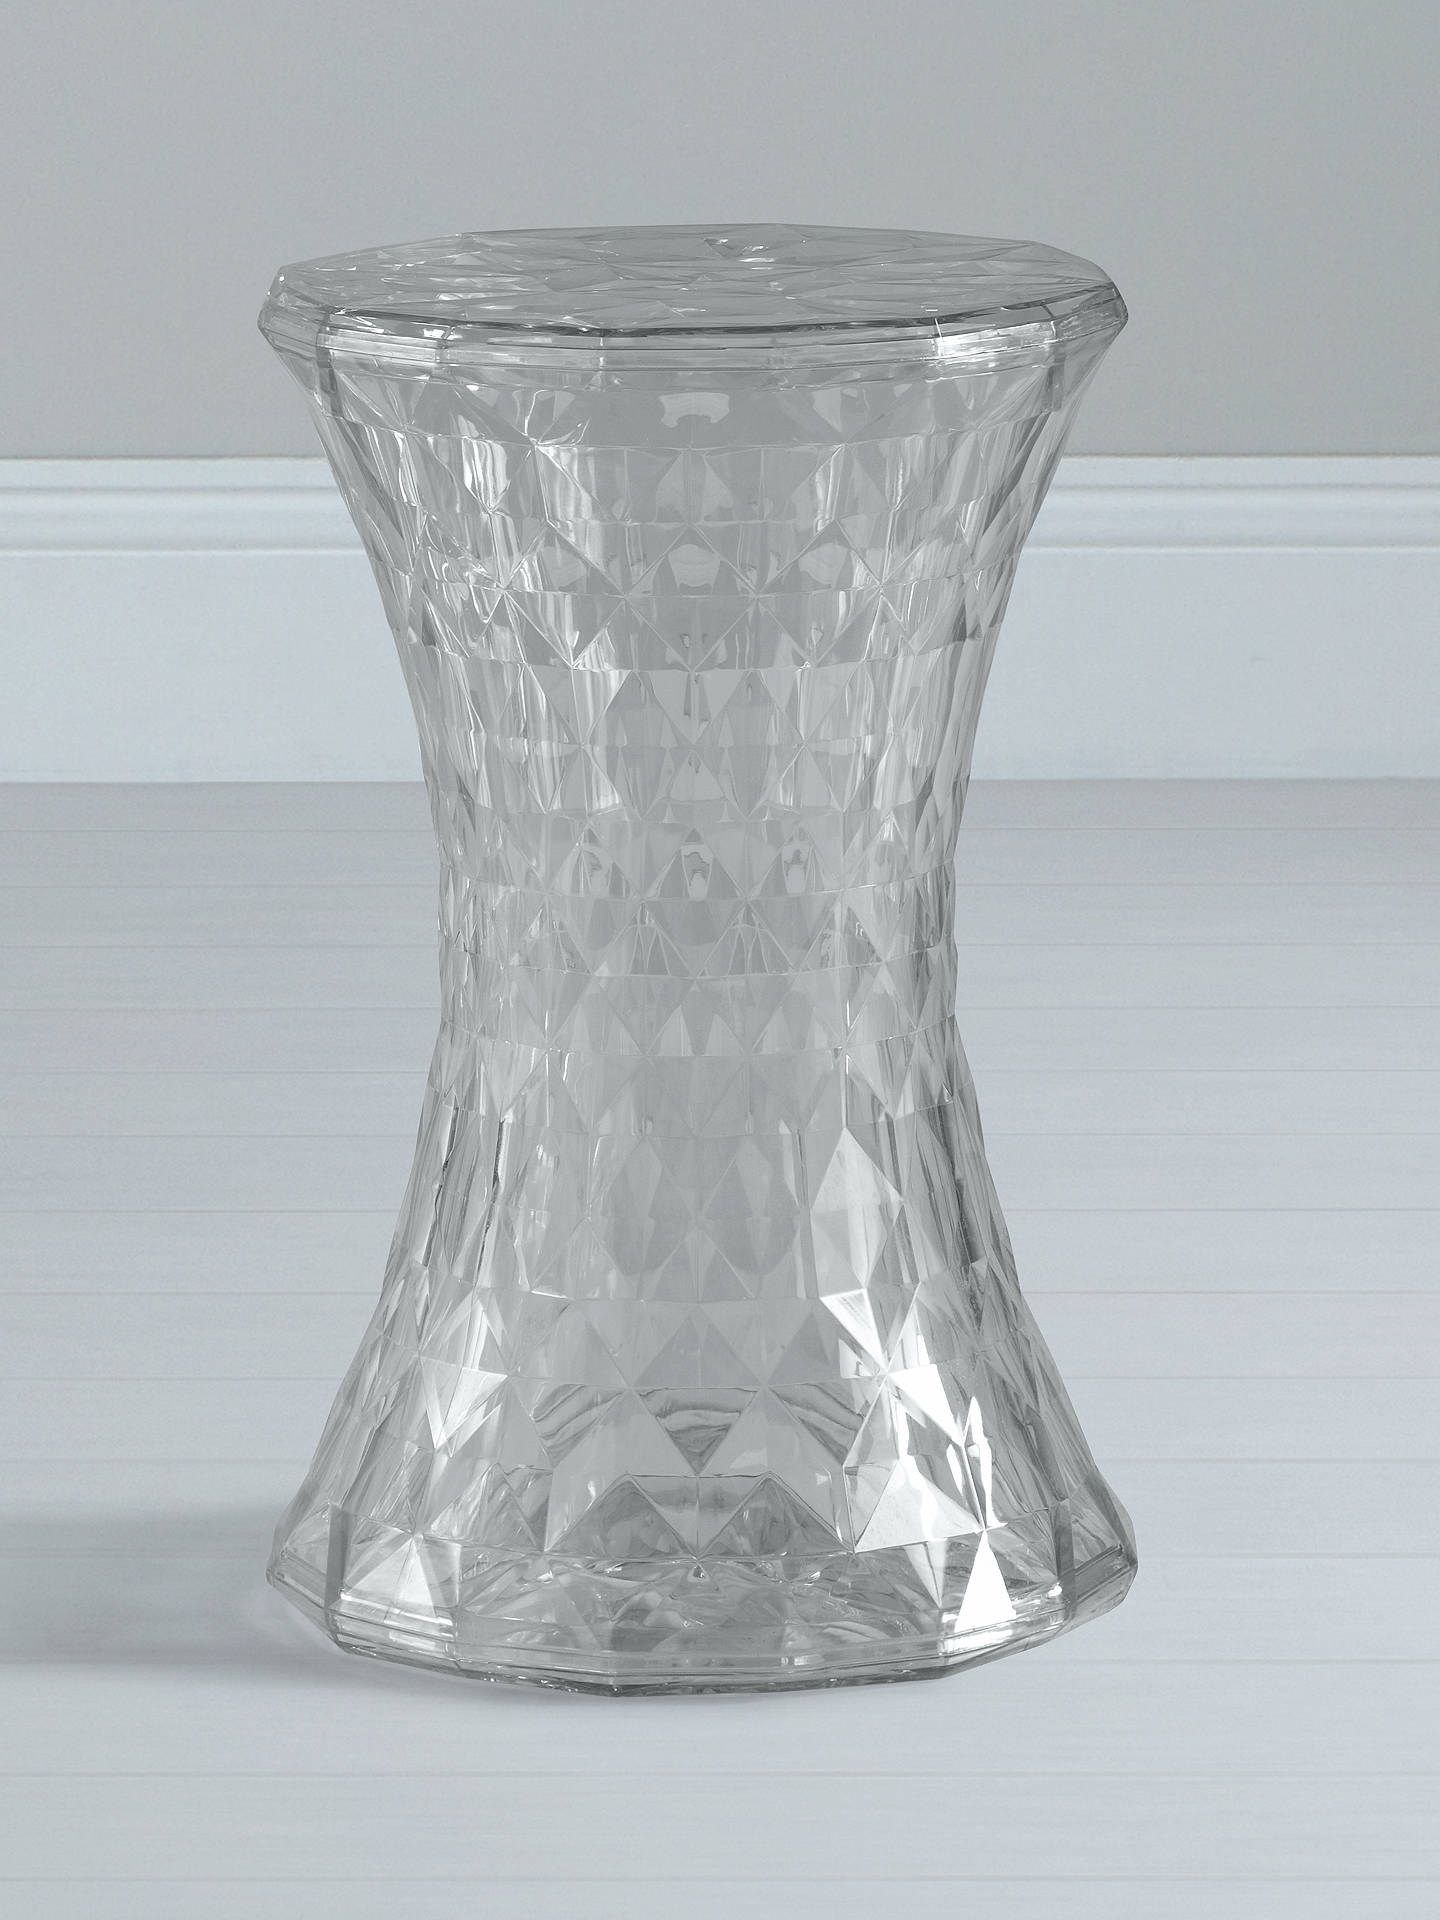 Marcel Wanders for Kartell Stone Stool, Crystal